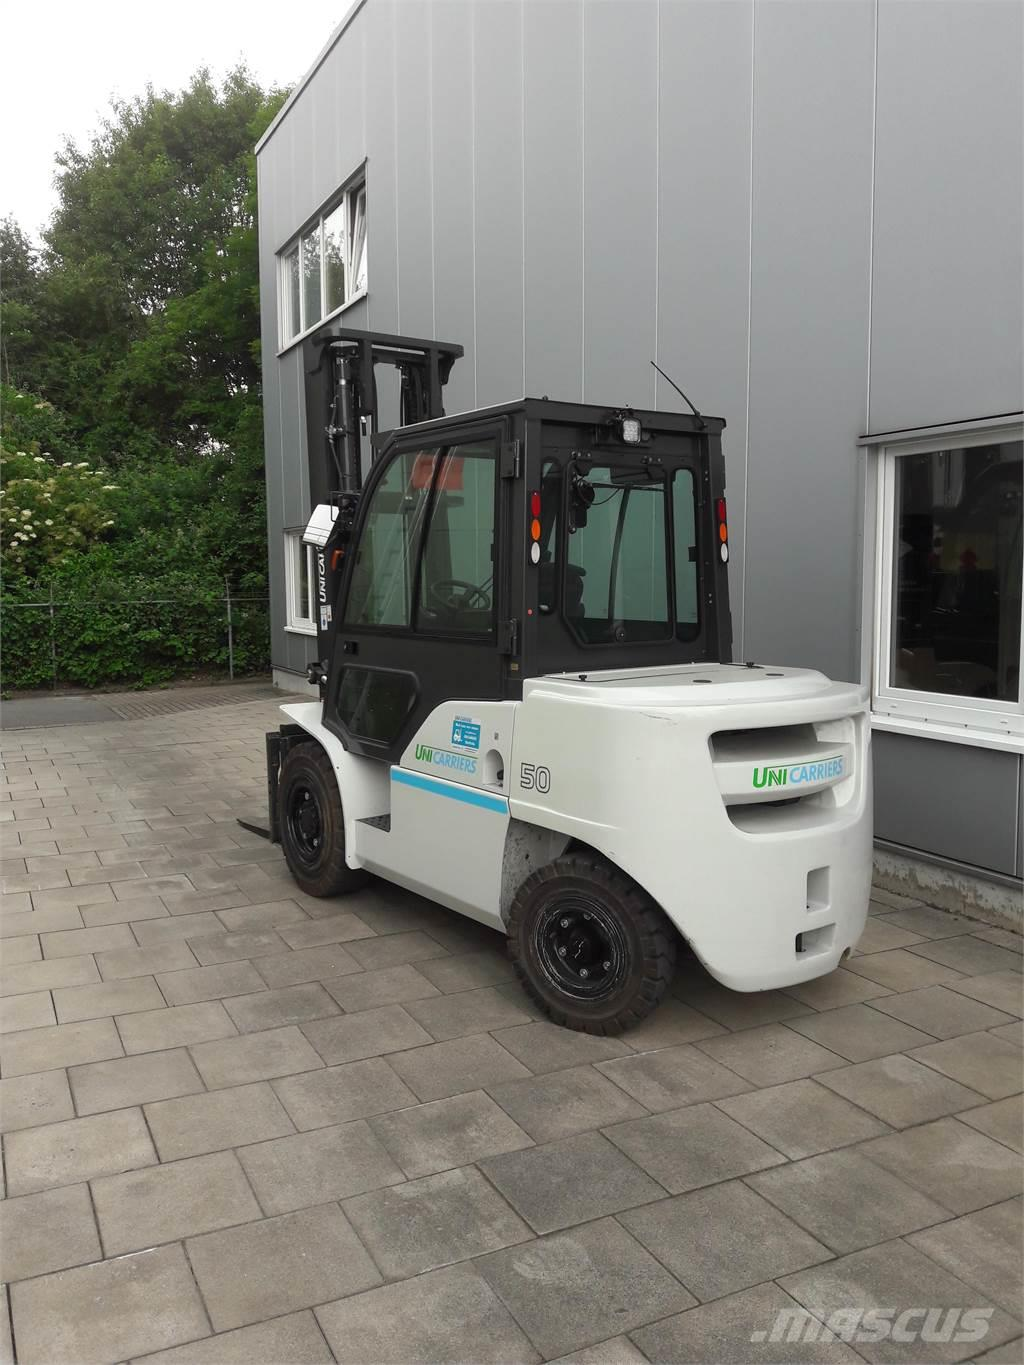 Unicarriers GX 50